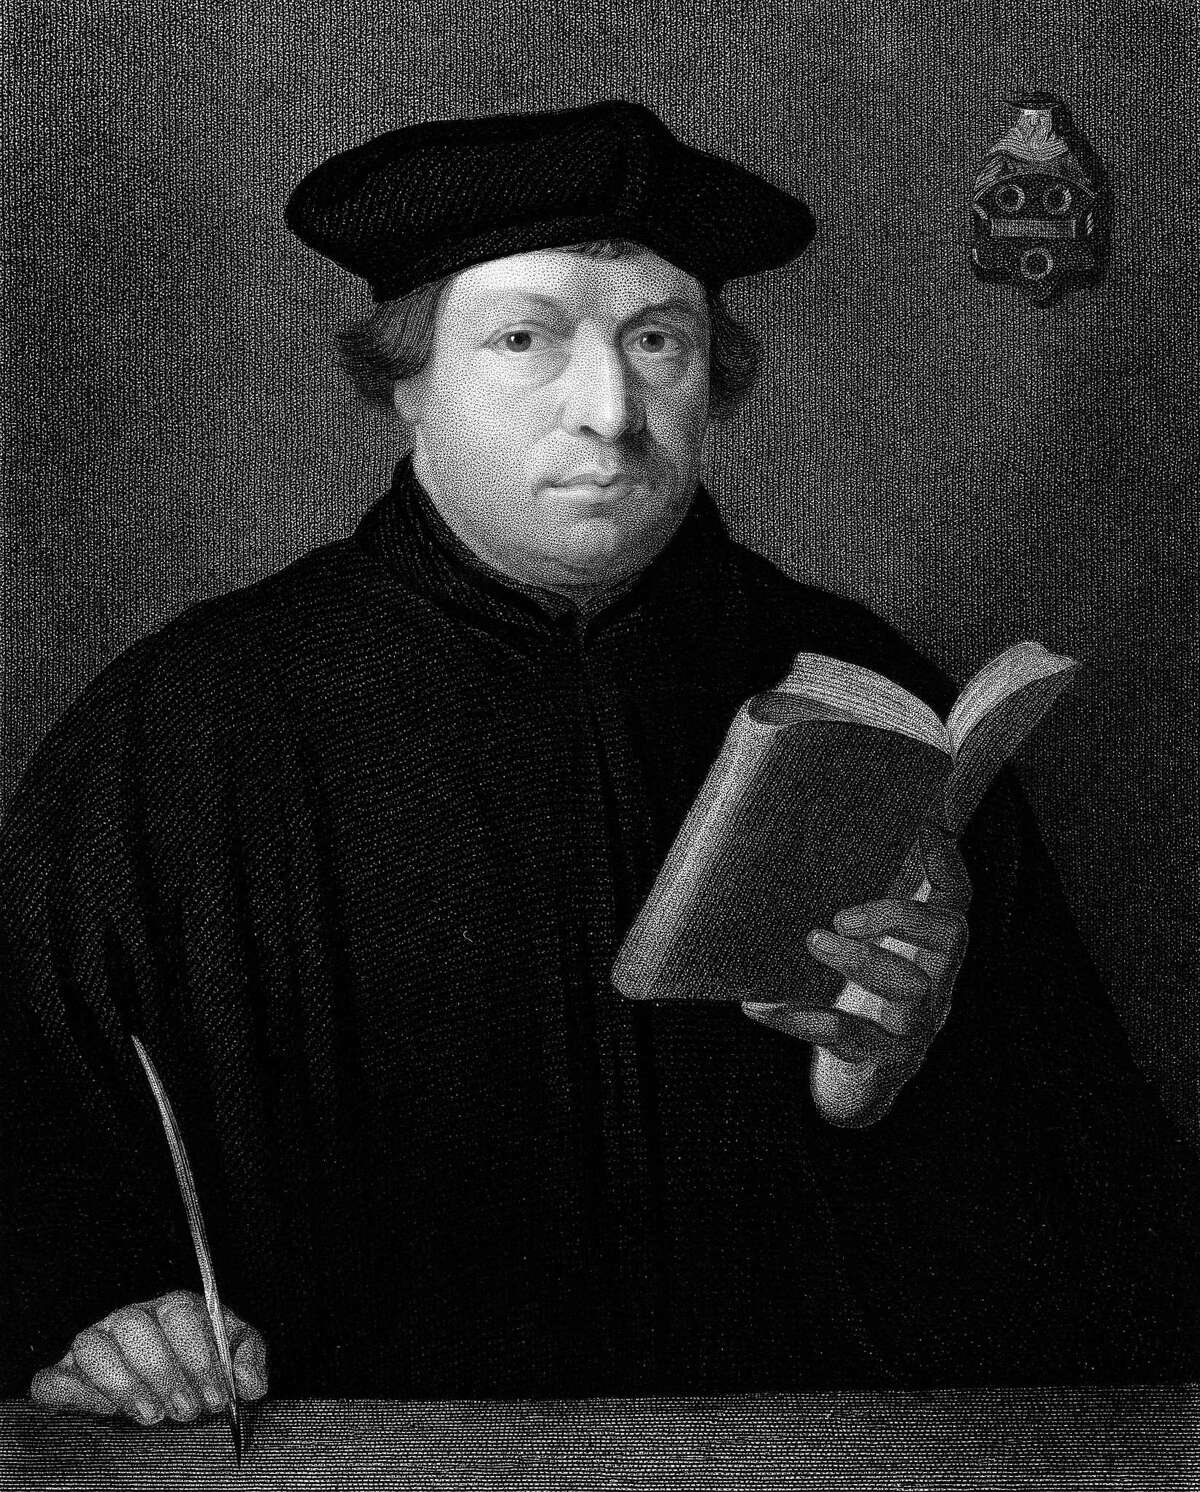 Martin Luther and the Reformation are explored as an example of network disruption and the spread of cultural movements.